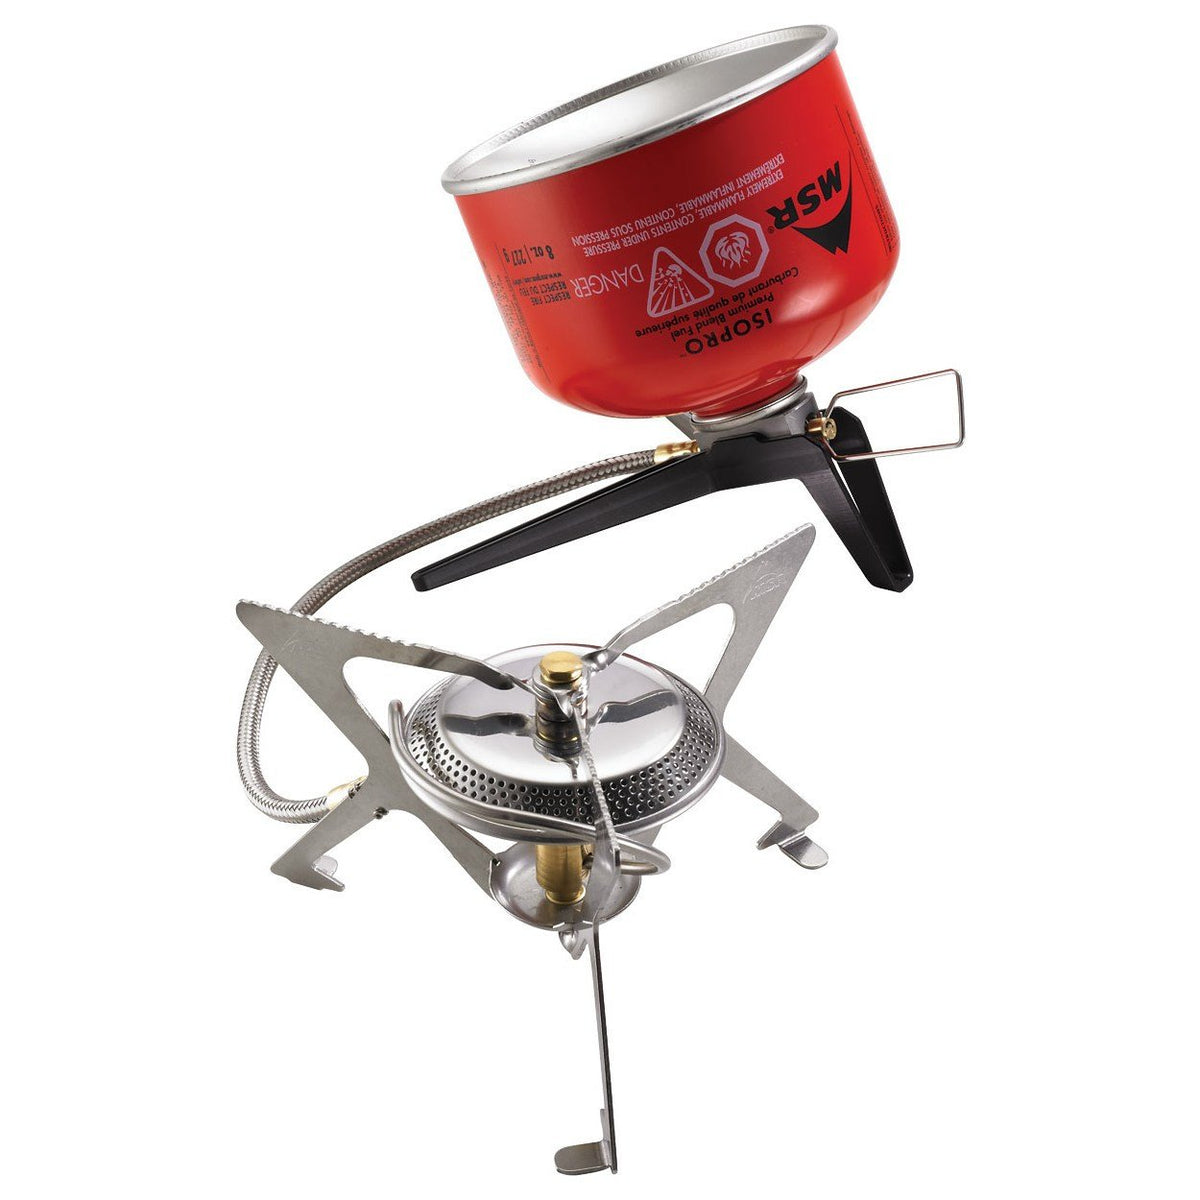 MSR WindPro II camping Stove